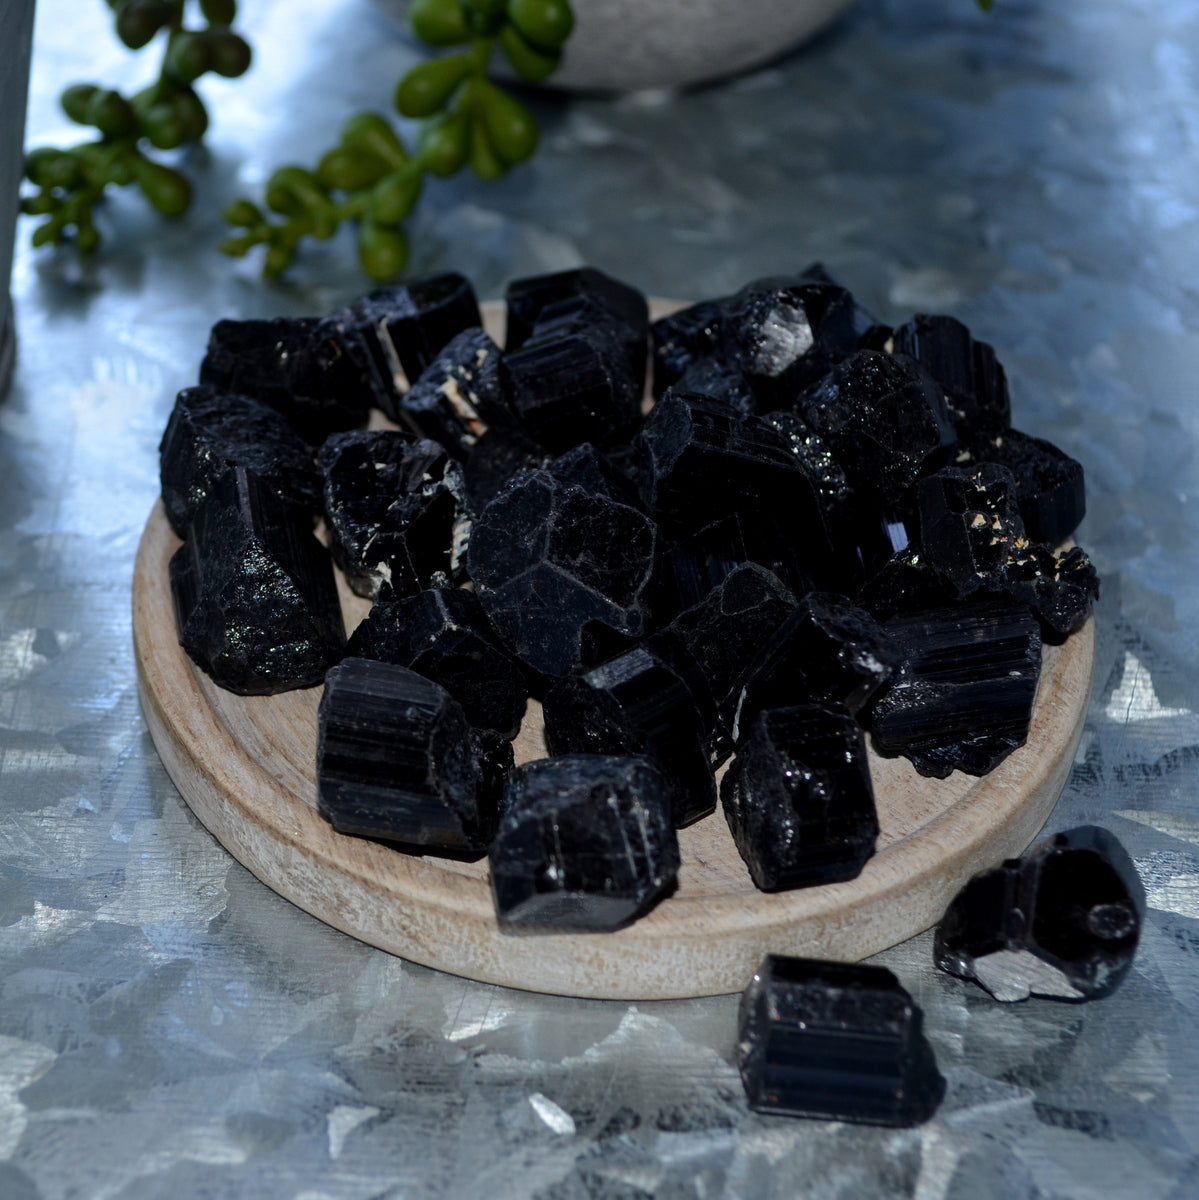 Black Tourmaline Natural Crystals at Illiom Crystals - Afterpay Available